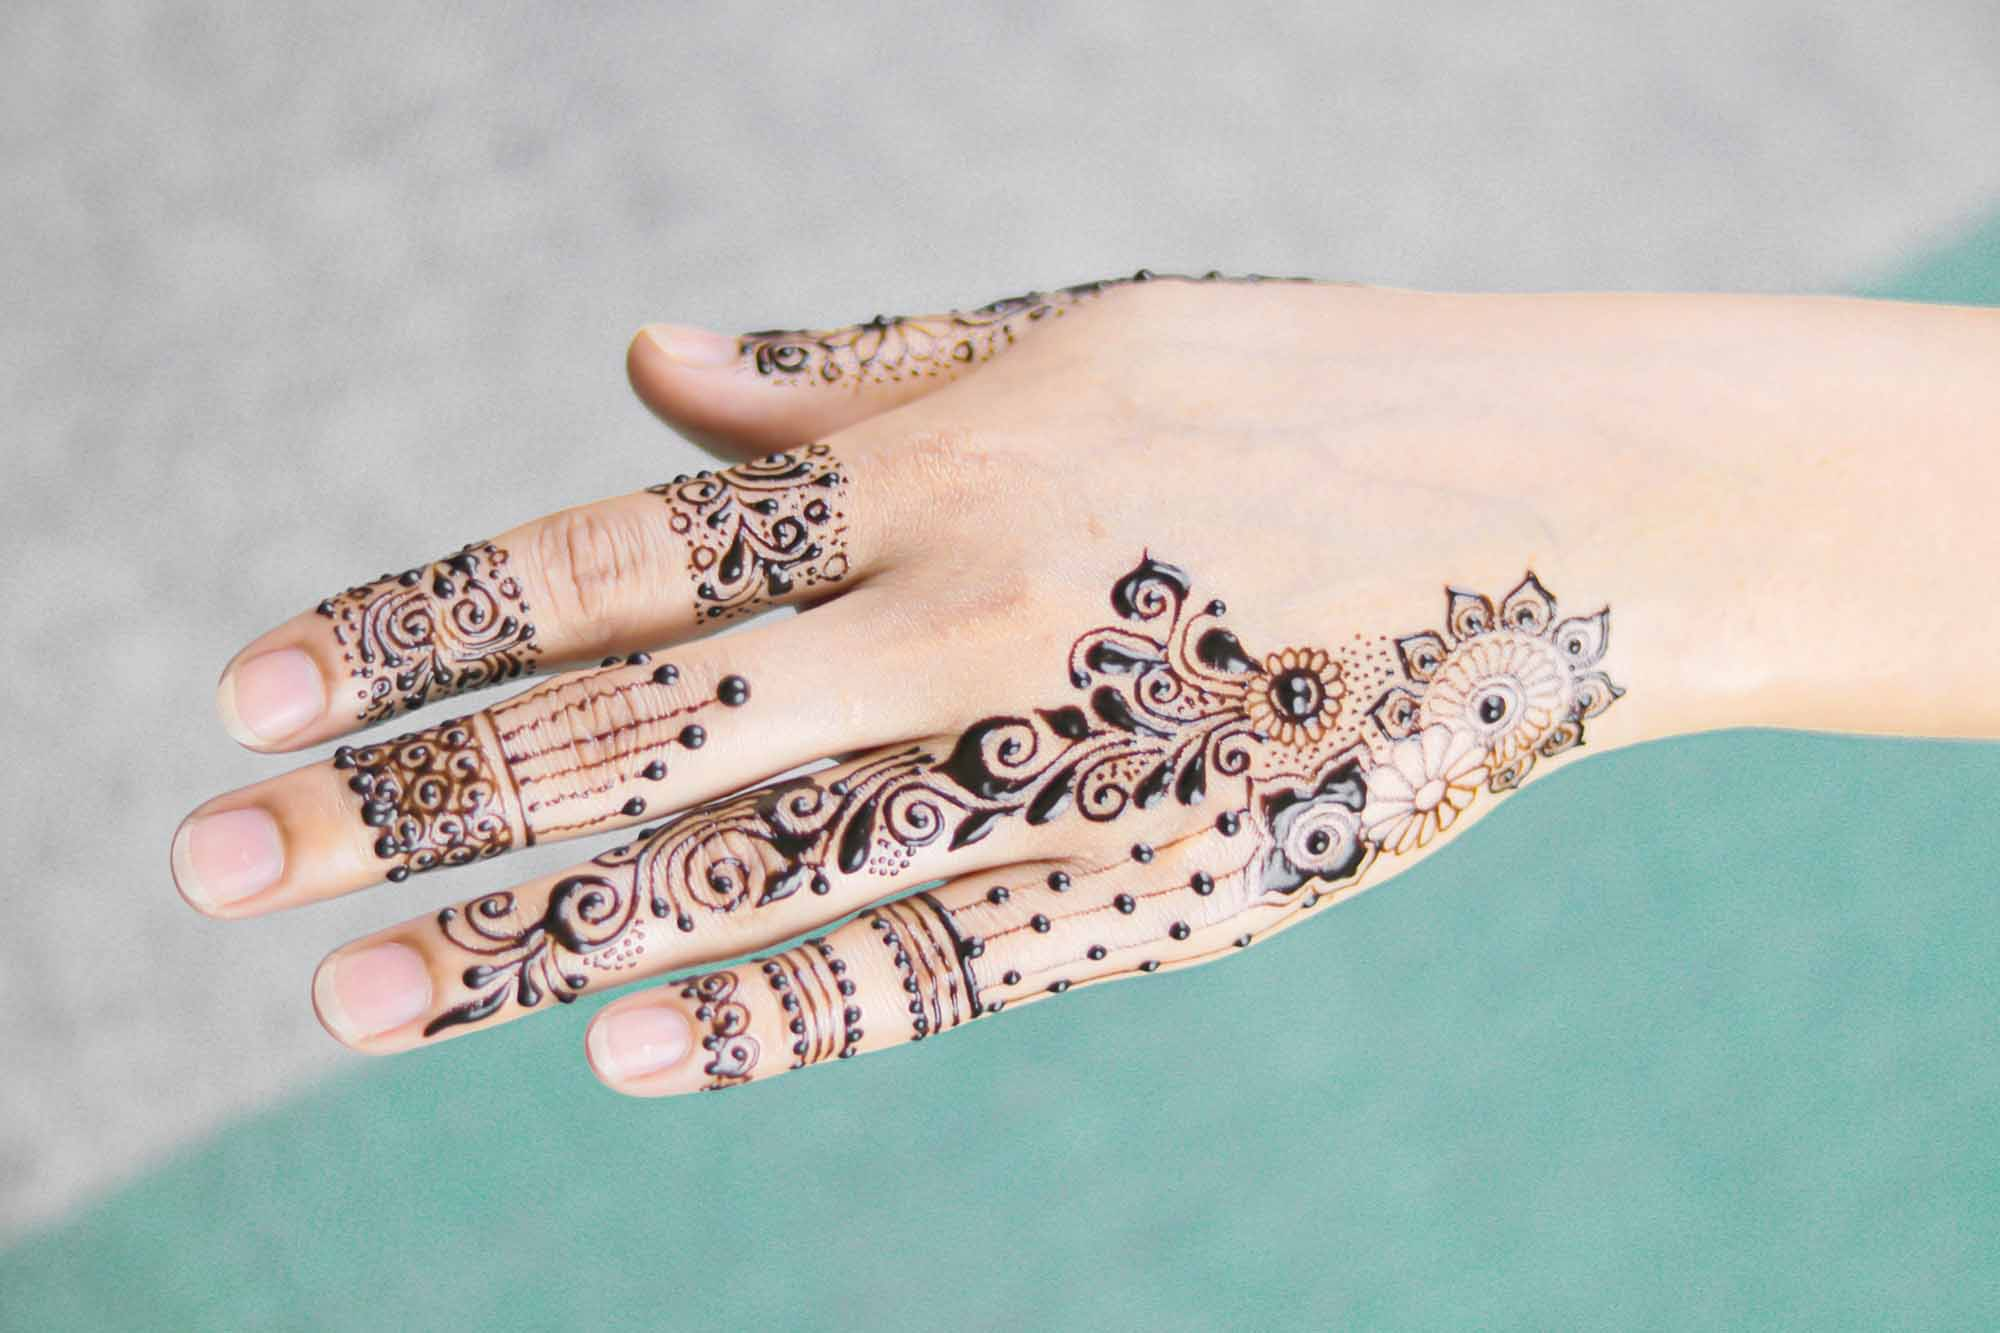 5 Reasons to Change Your Style with Temporary Tattoos